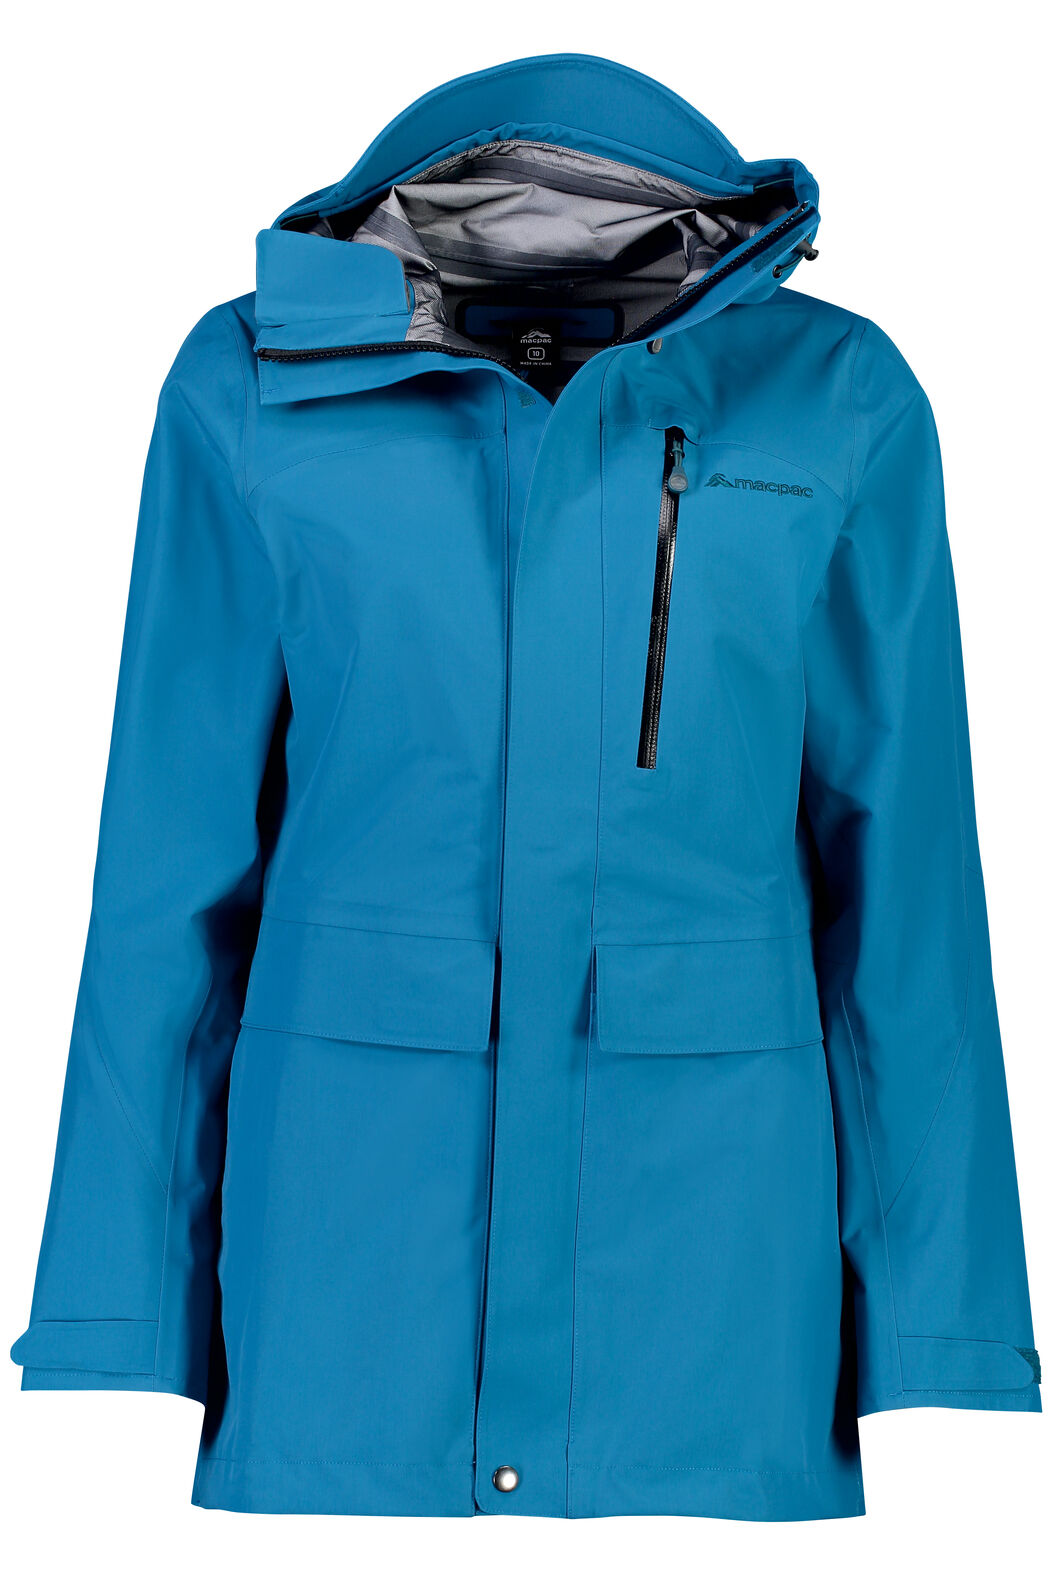 Resolution Pertex Shield® Long Rain Jacket - Women's, Ocean Depths, hi-res